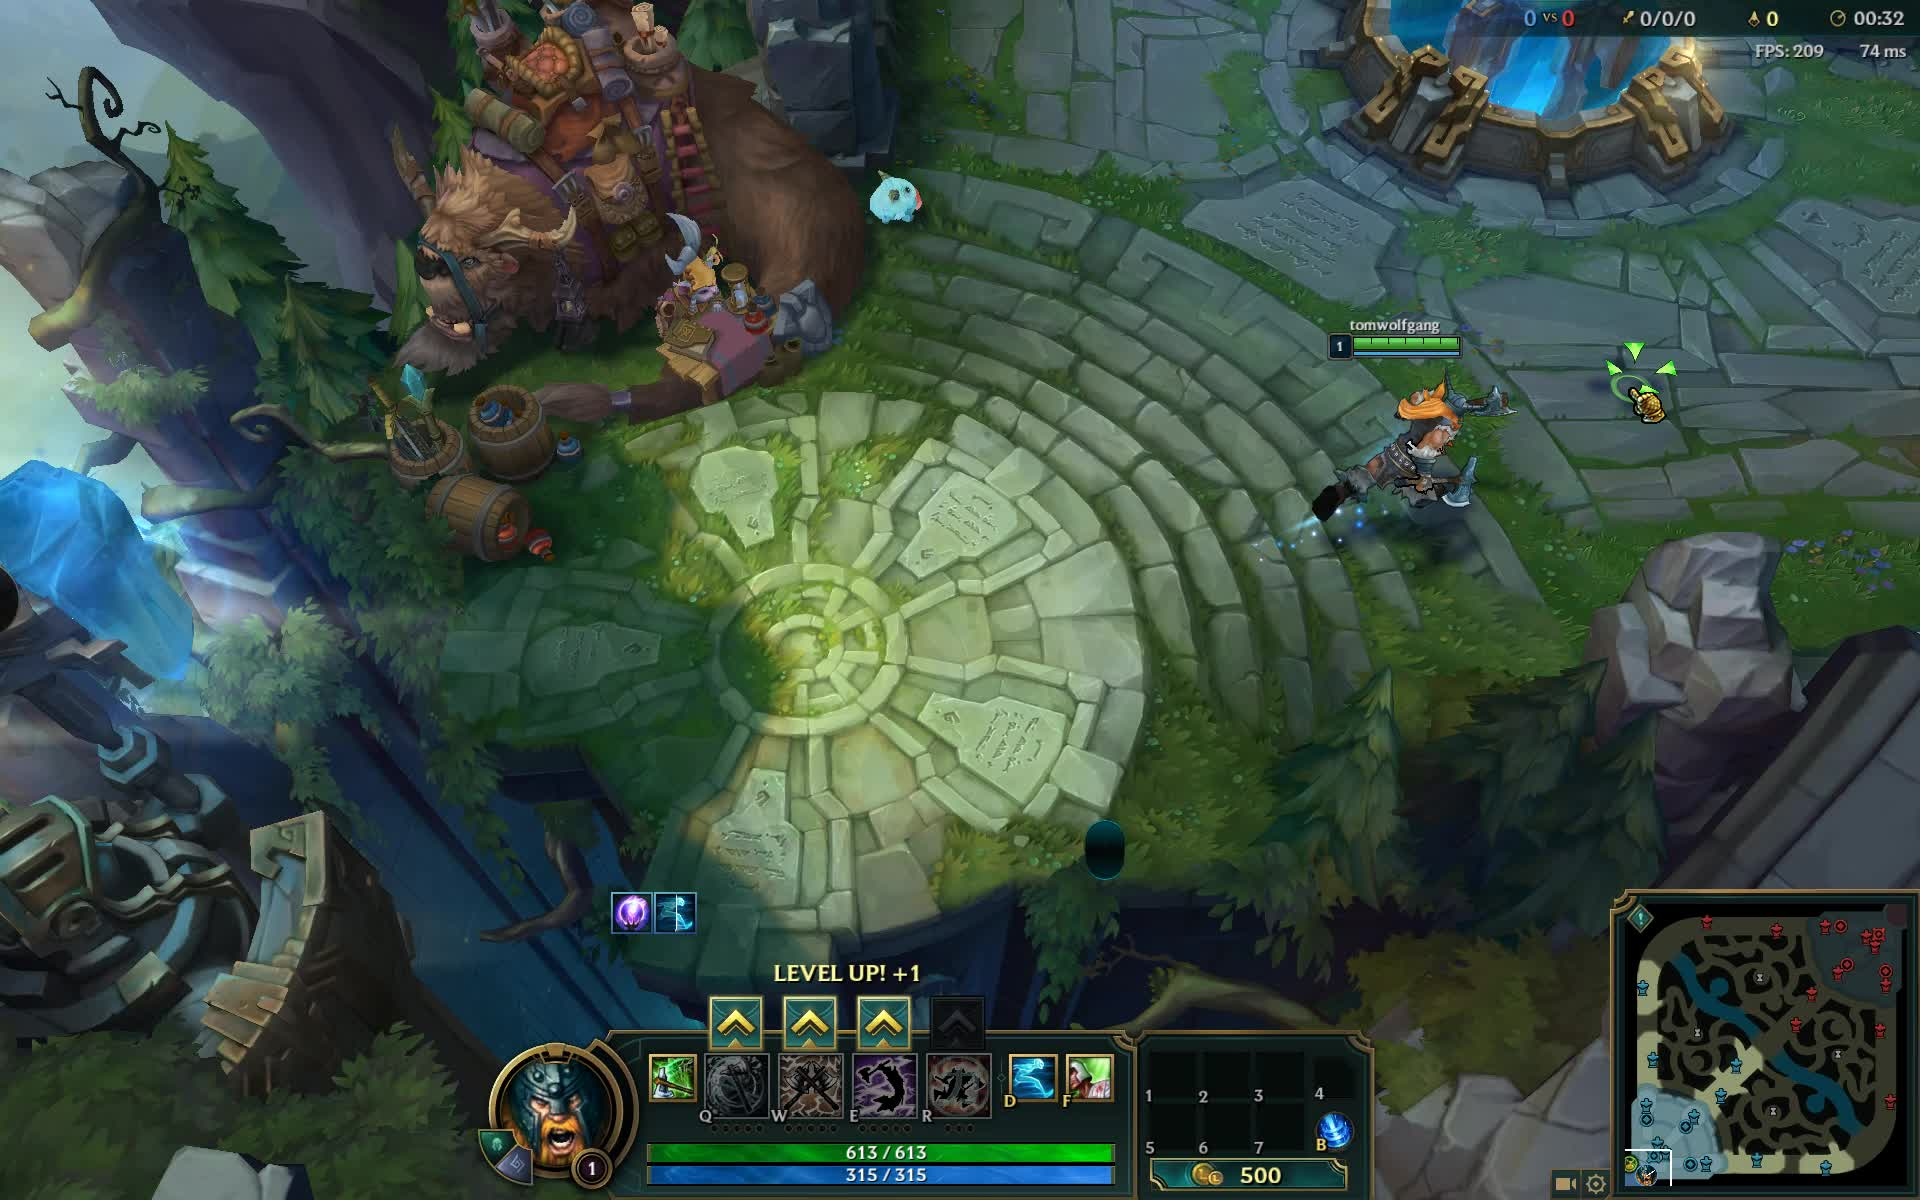 LeagueOfLegends, Overwolf, video, Check out my video! #LeagueOfLegends | Captured by #Overwolf GIFs